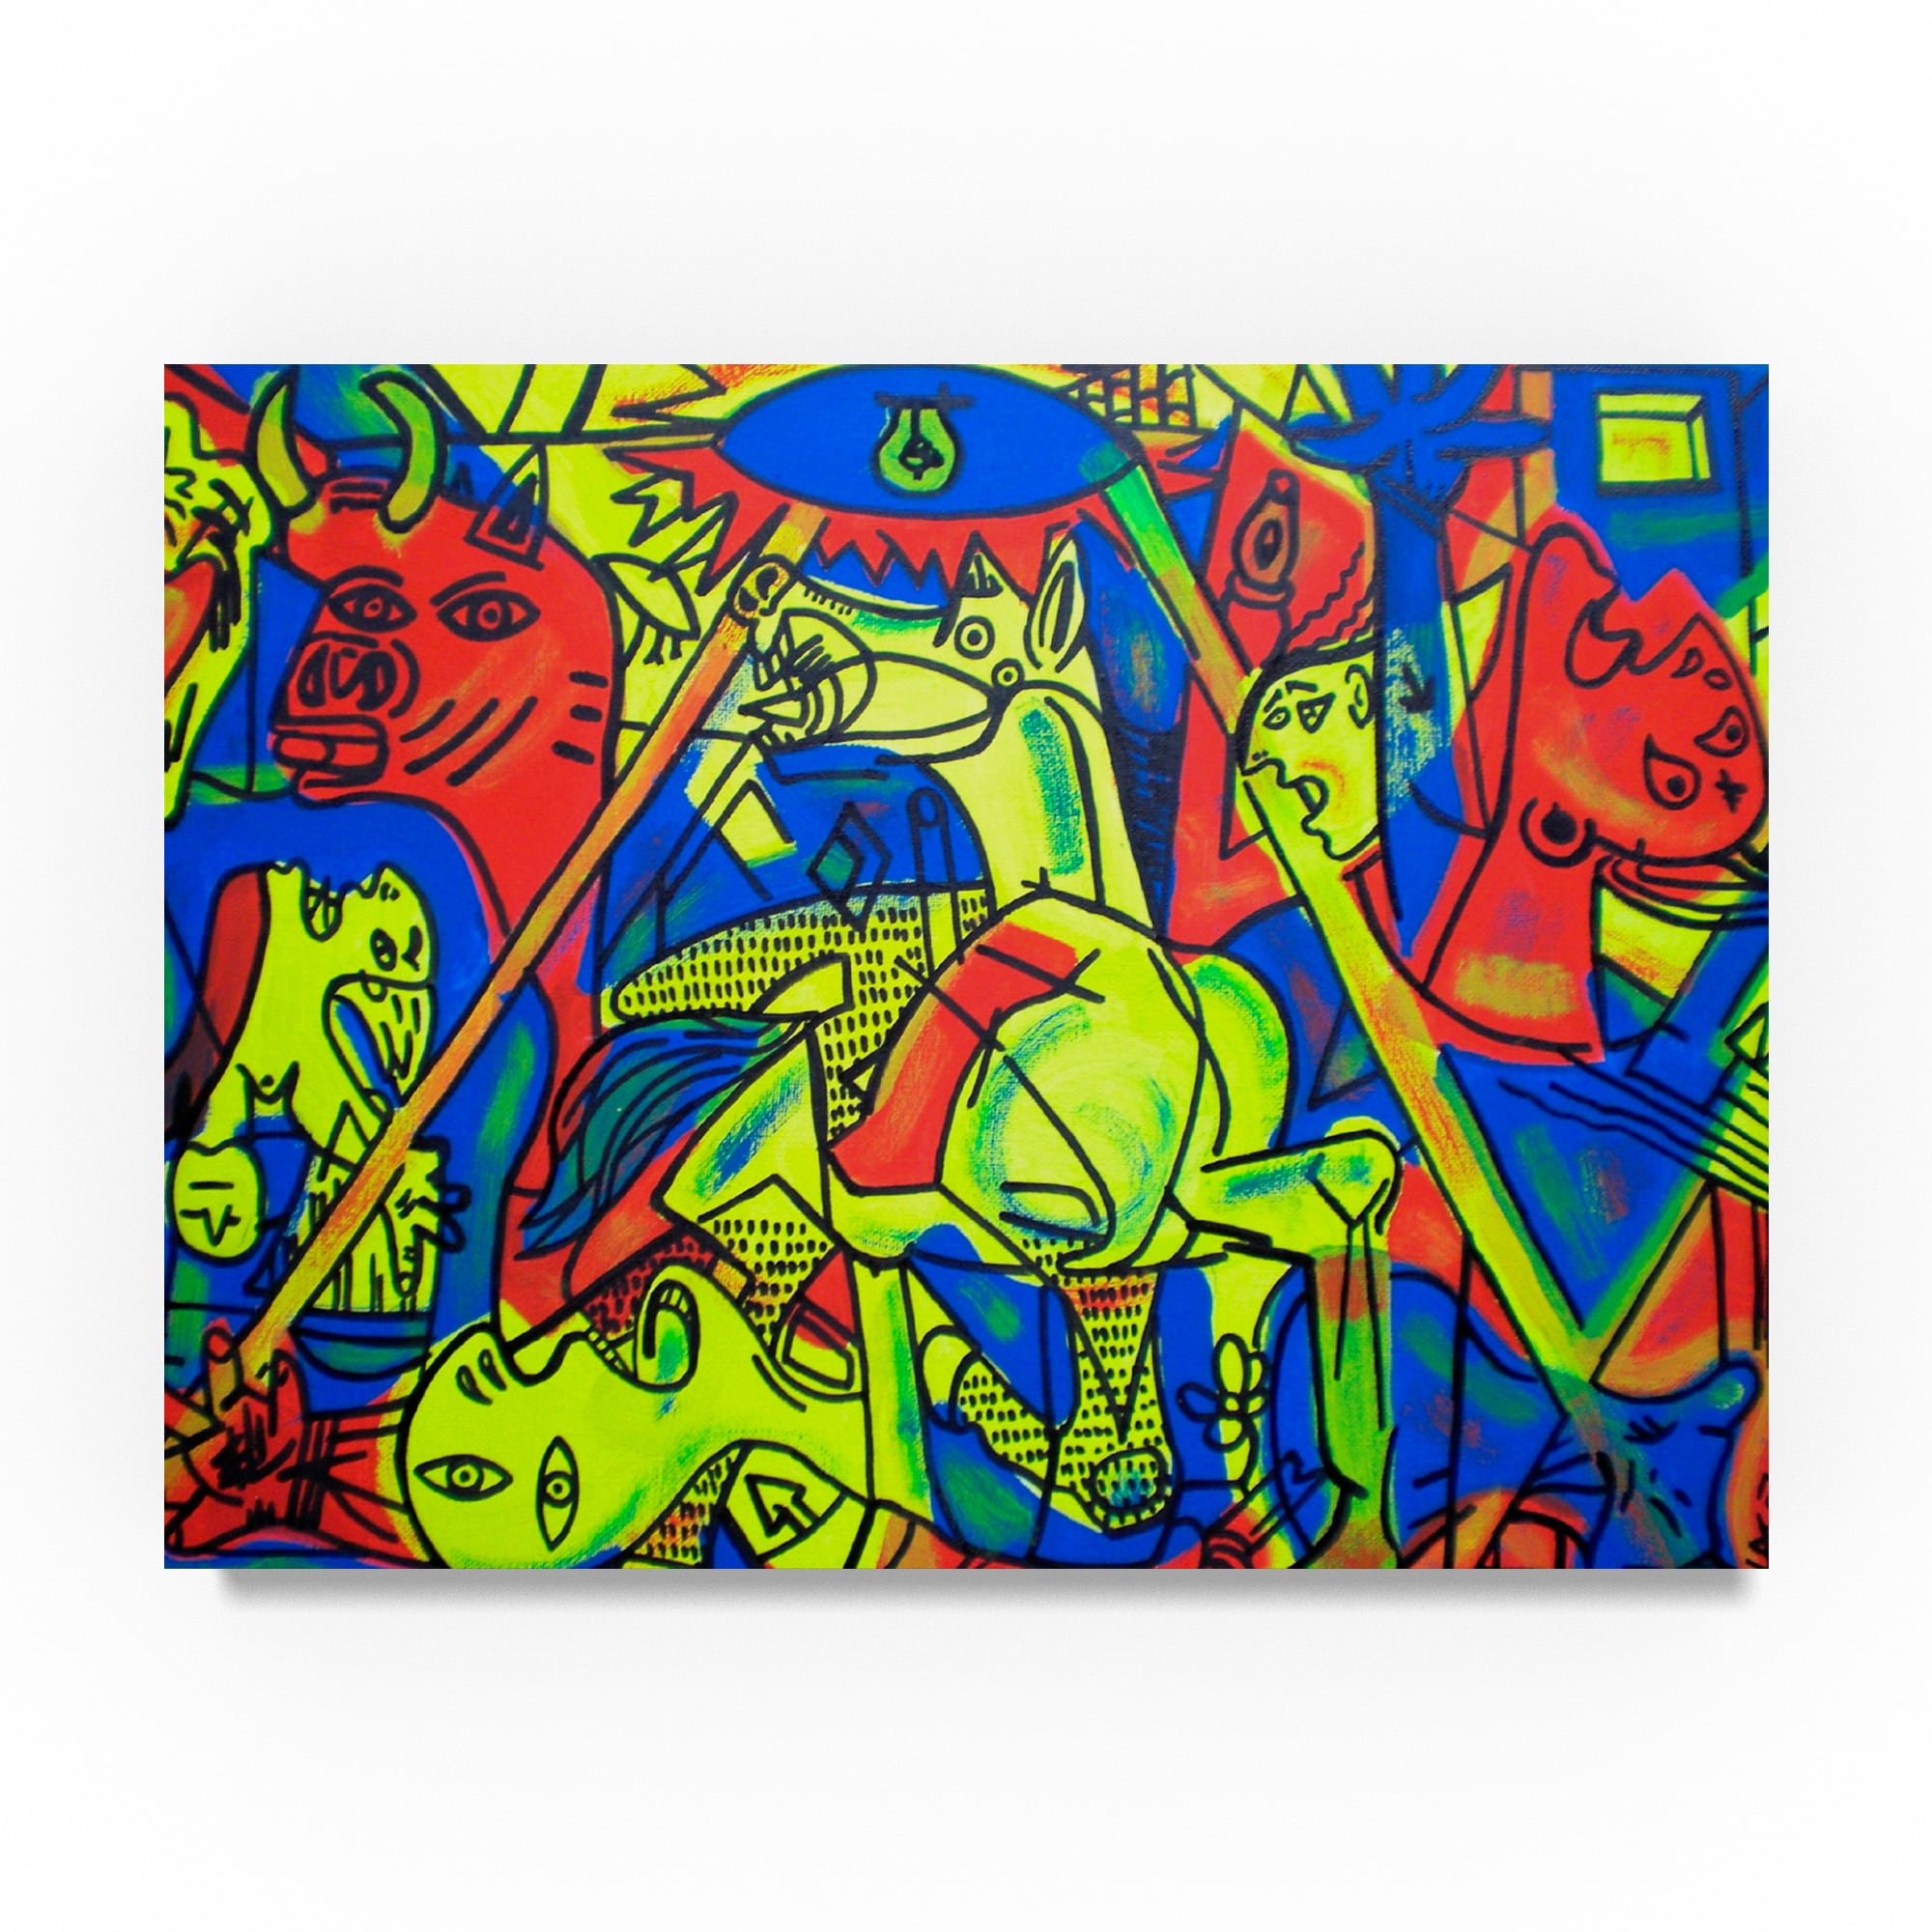 Shop abstract graffiti guernica canvas art free shipping today overstock 19207790